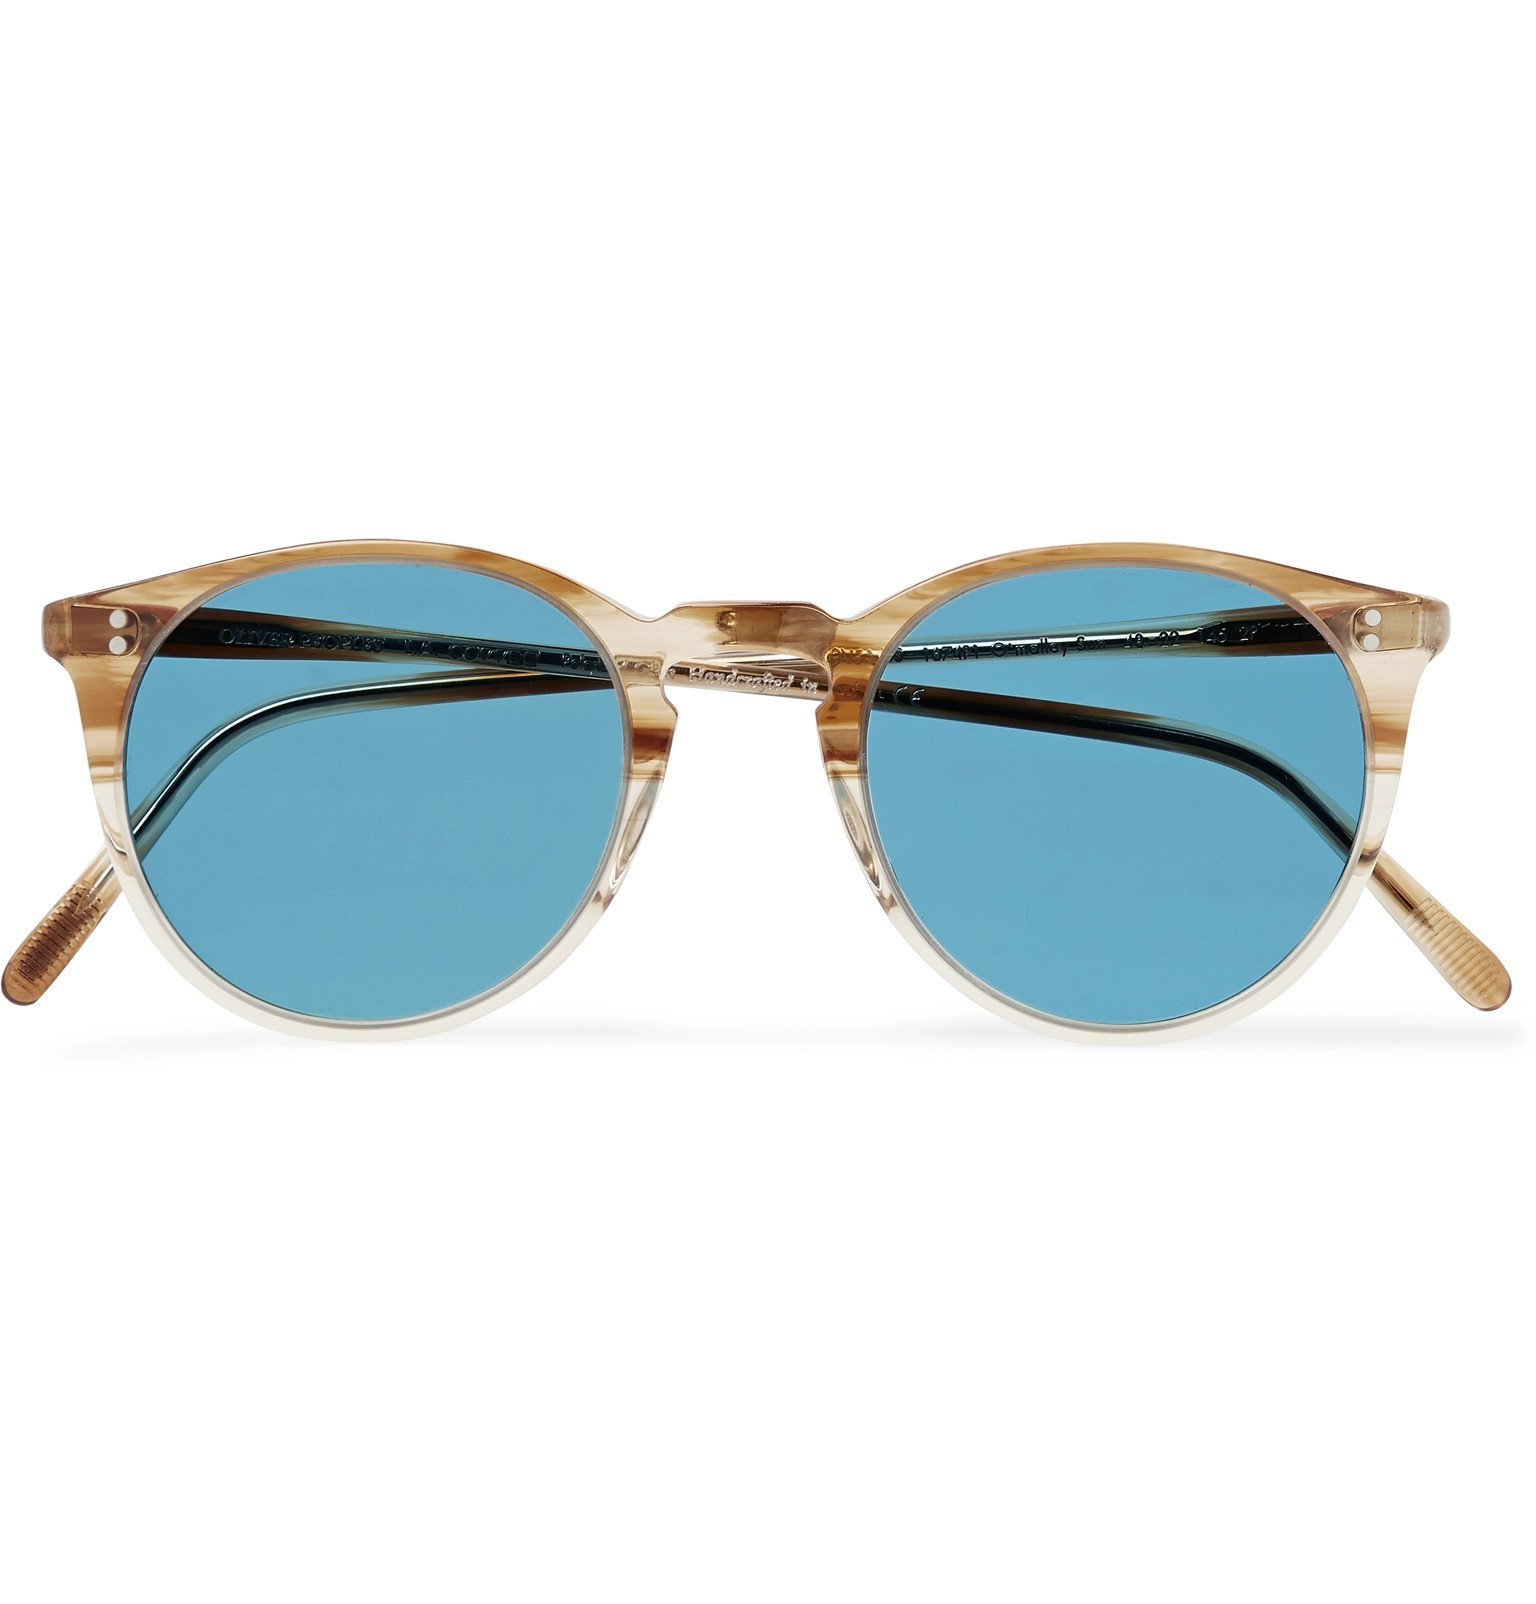 Oliver Peoples - O'Malley Round-Frame Acetate Sunglasses - Brown